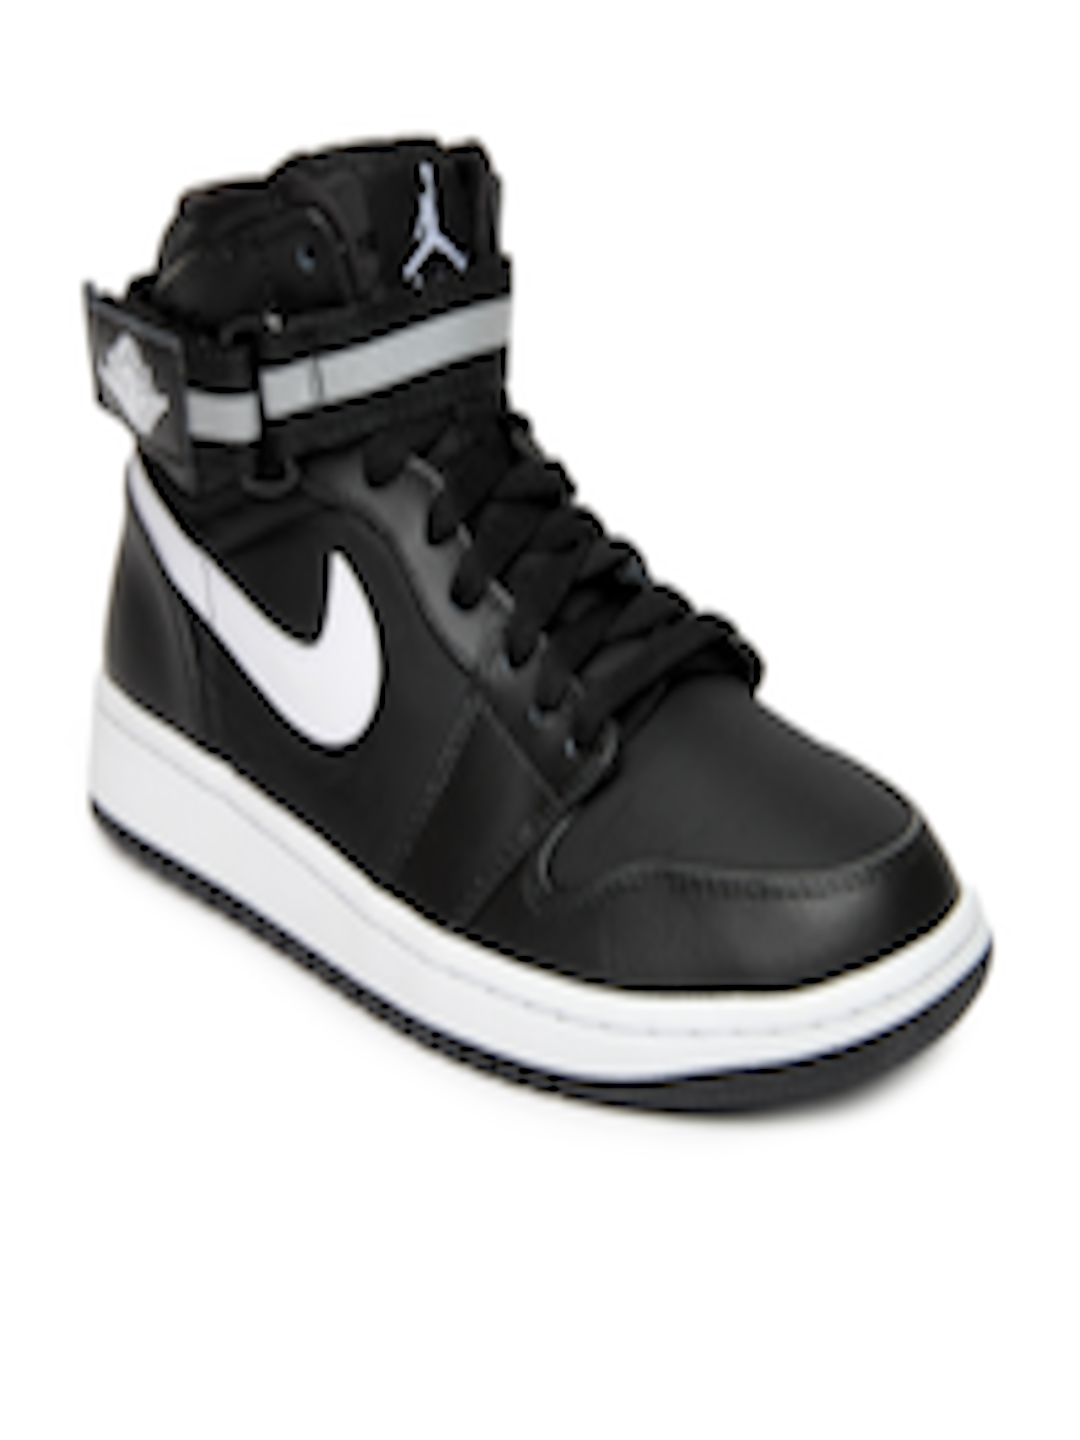 hot sale online 2060f 5a8bb Buy Nike Men Black Air Jordan 1 High Strap Basketball Shoes - Sports Shoes  for Men 613076   Myntra